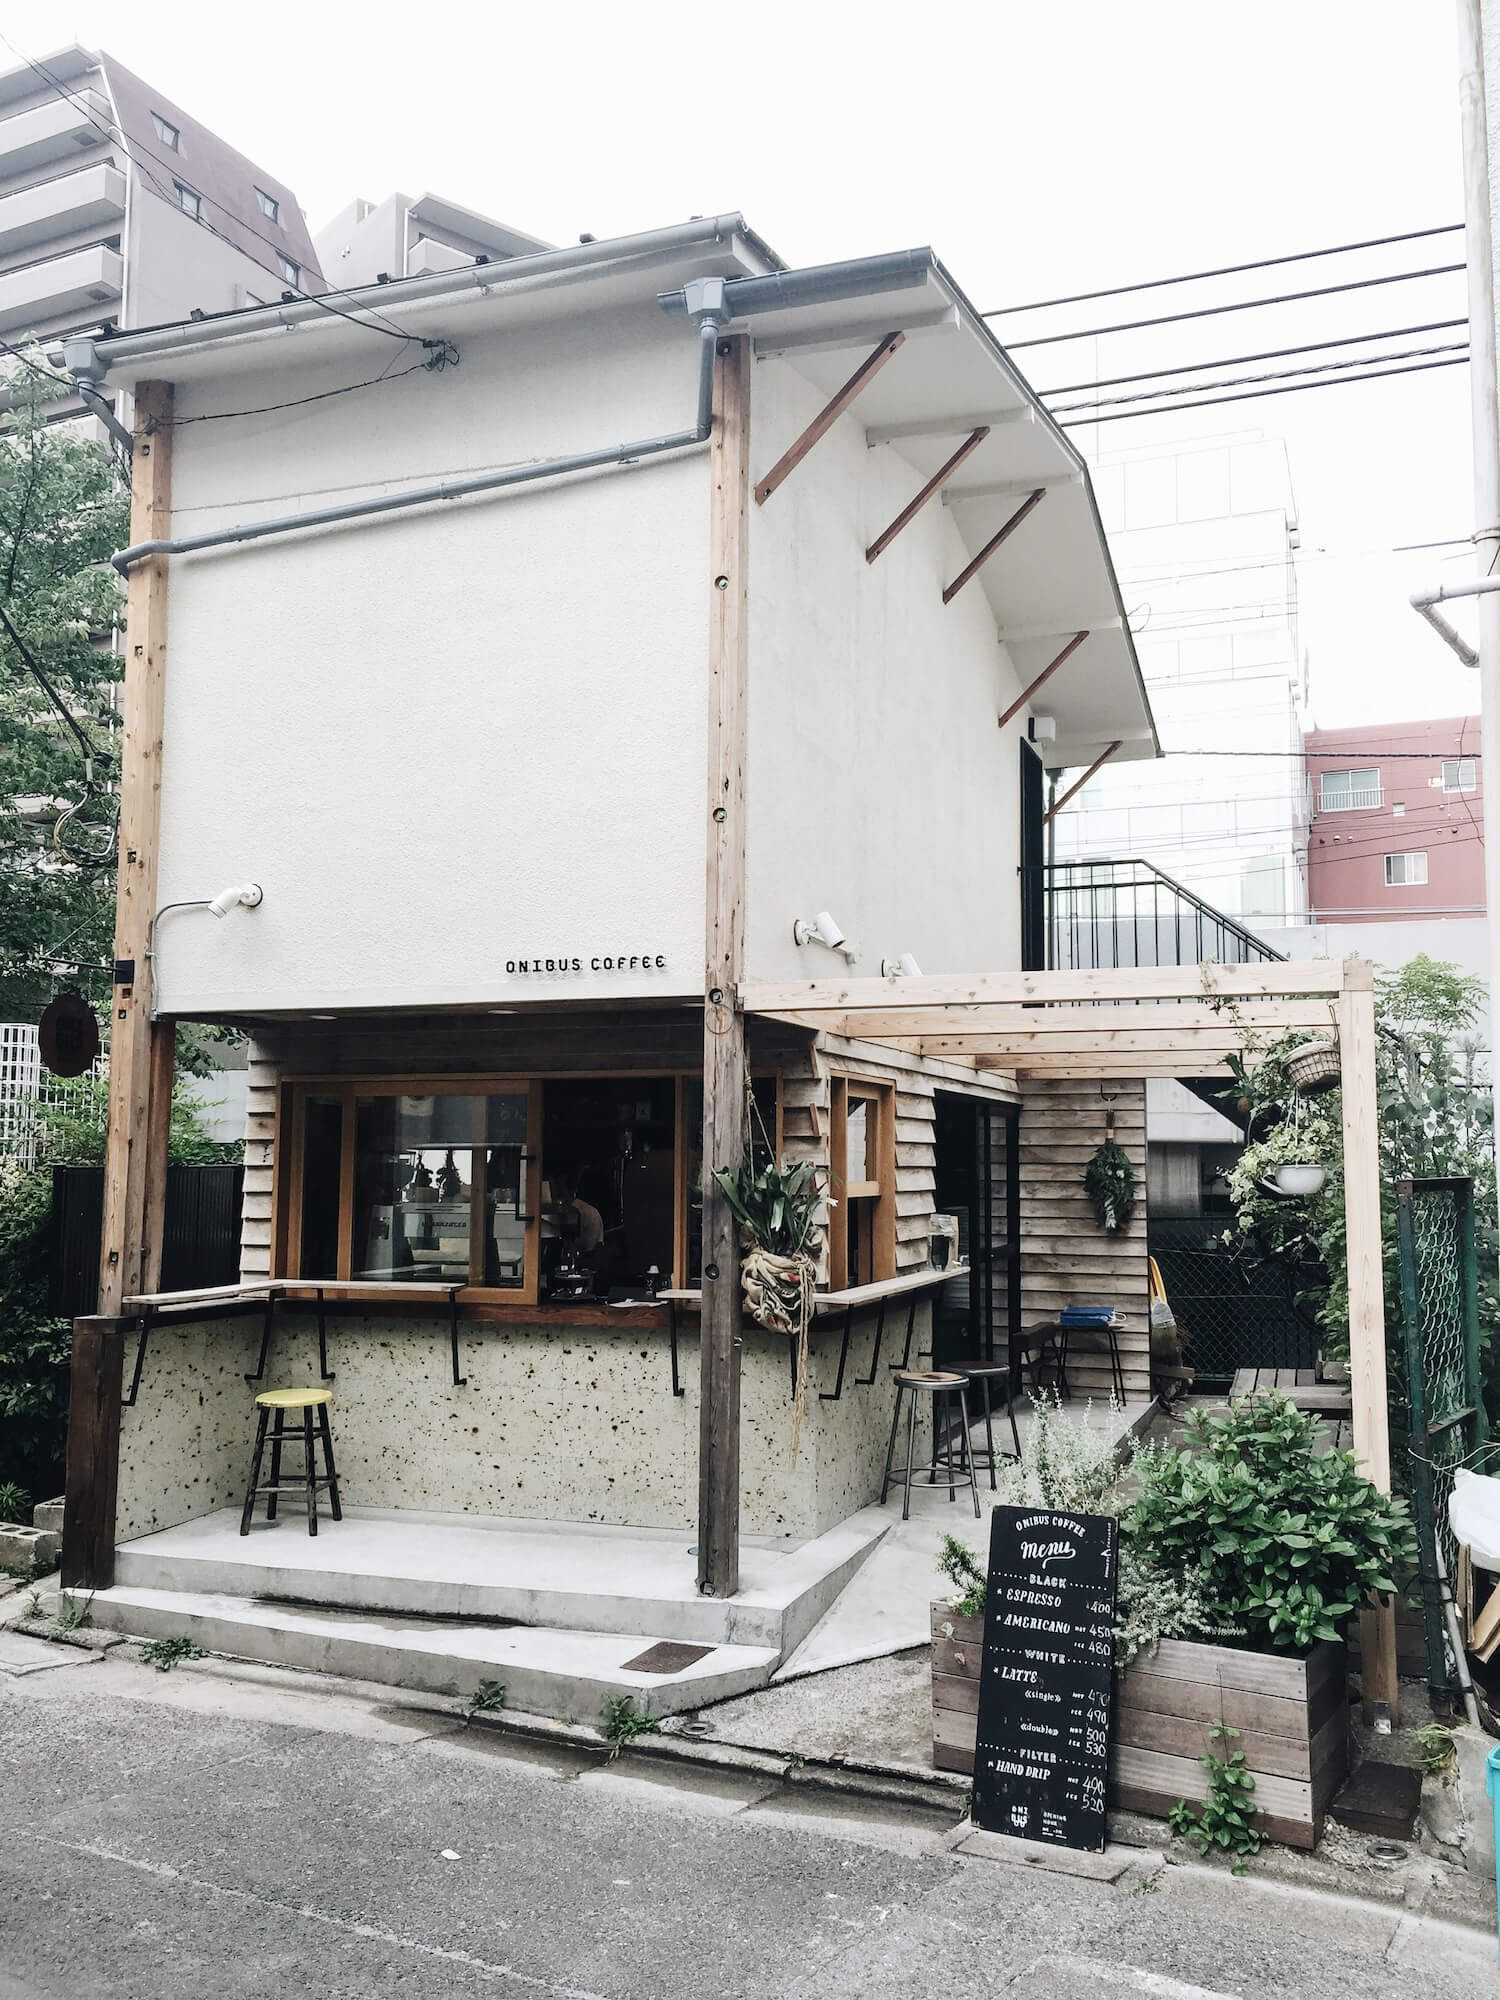 Tokyo S Coolest Coffee Shops To Get Your Caffeine Fix Live Like It S The Weekend Small Coffee Shop Cafe Shop Coffee Shop